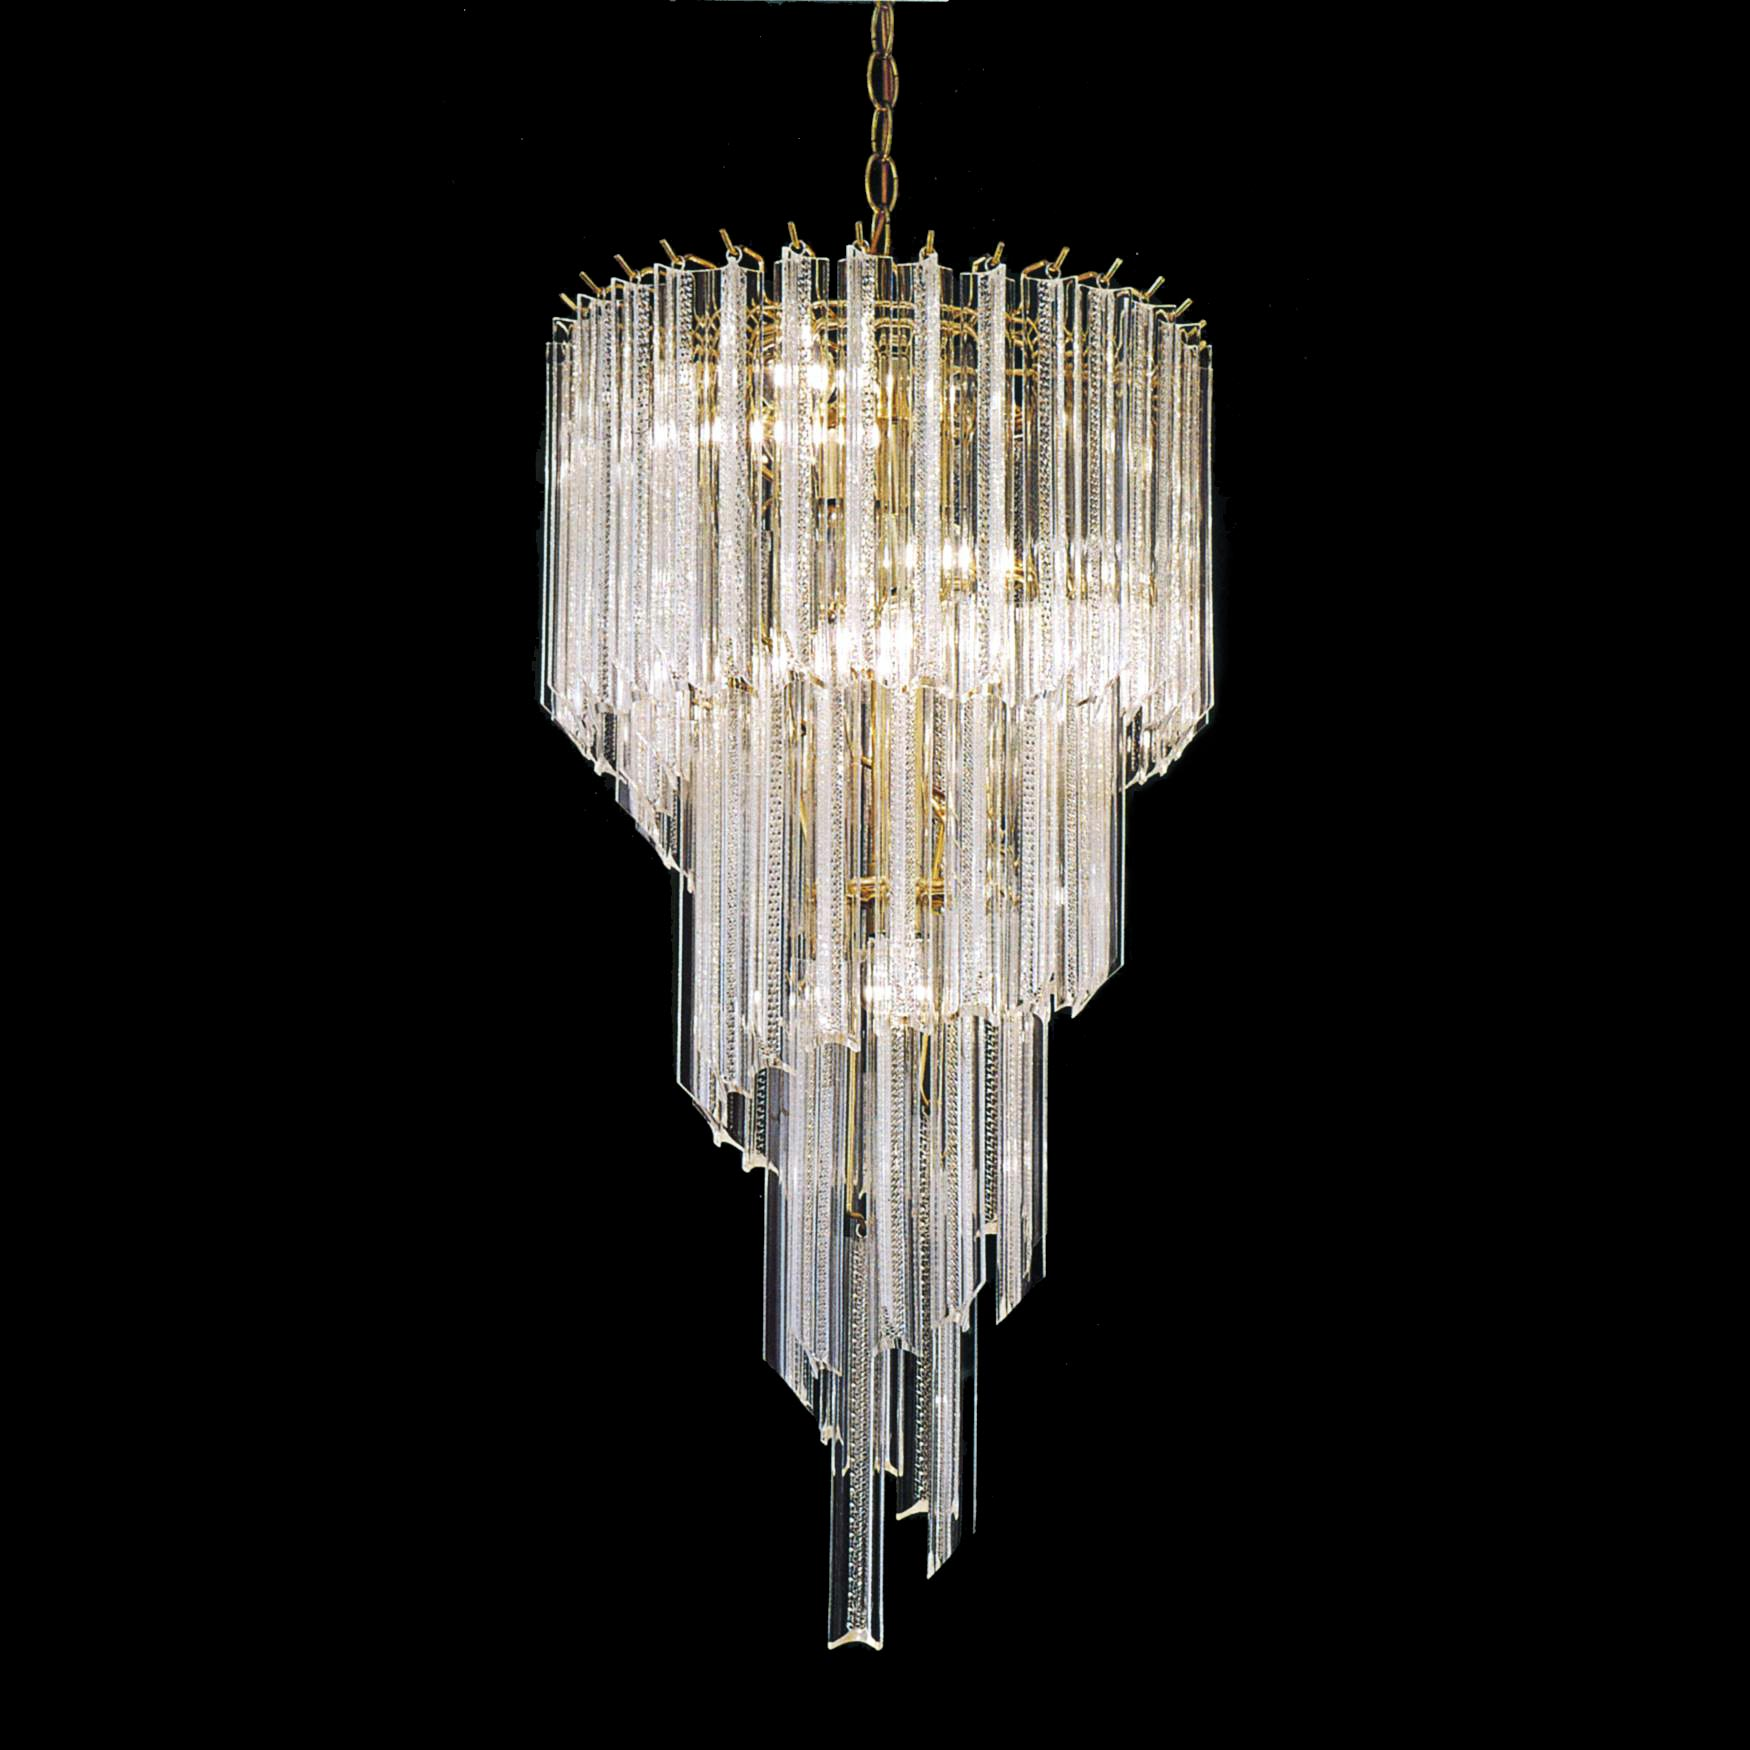 Acrylic 5 light Polished Brass Spiral Chandelier Free  : L13411223 from www.overstock.com size 1750 x 1750 jpeg 119kB